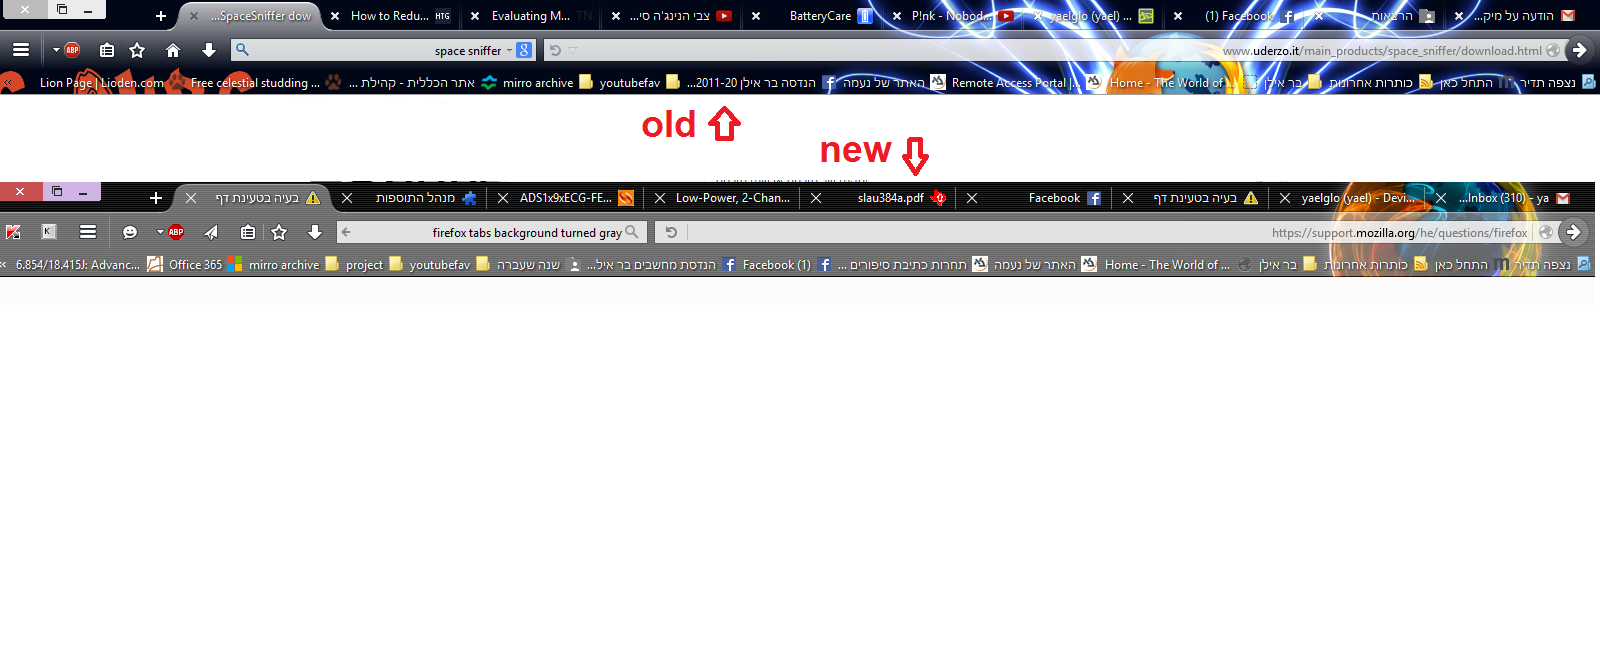 how to change the navigation bar cilour from bridge